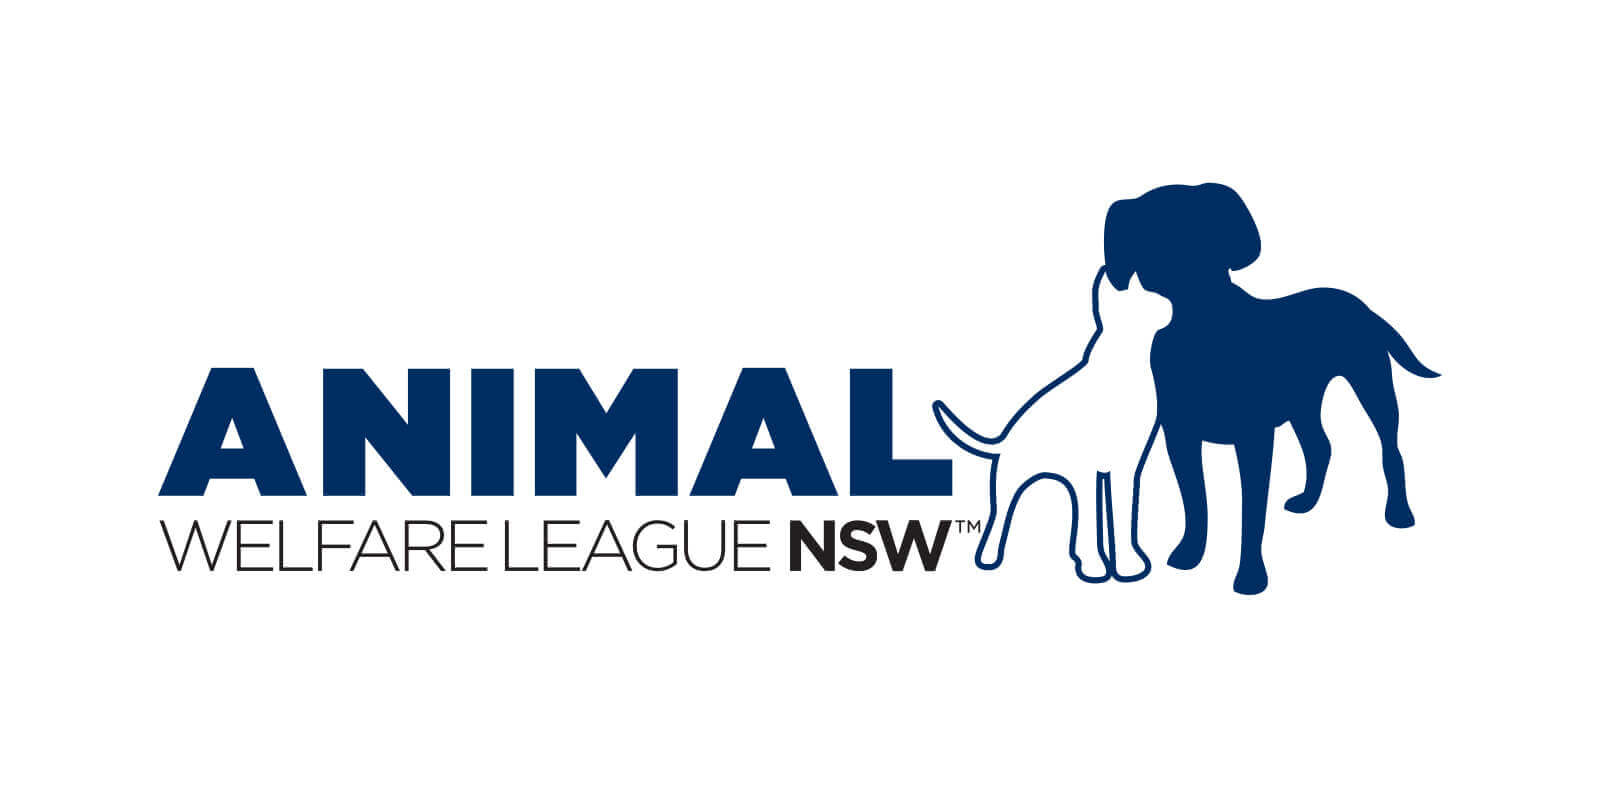 Animal Welfare League NSW logo